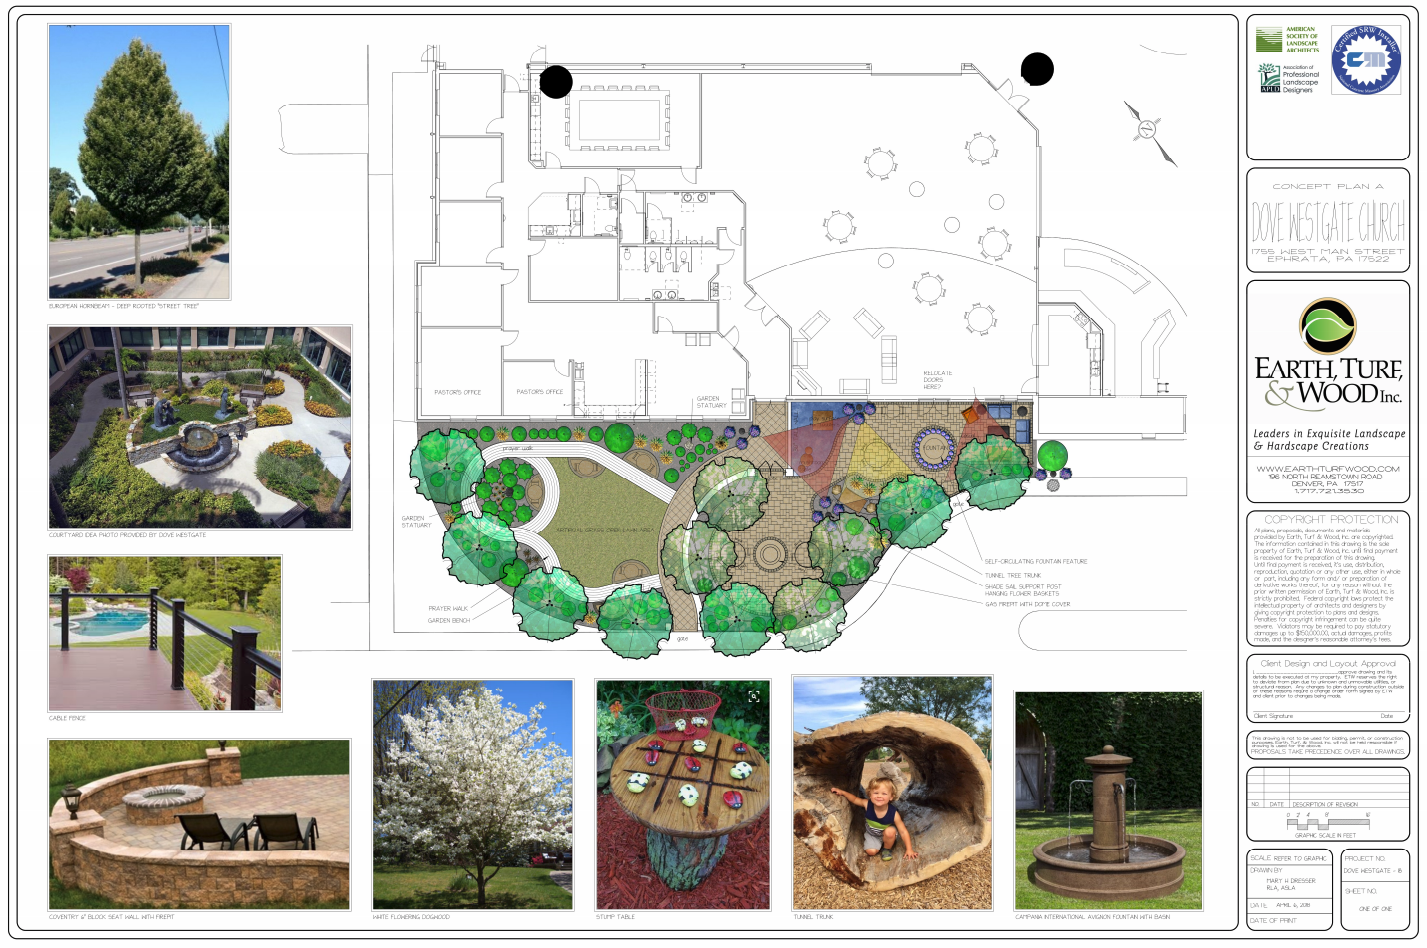 Earth Turf & Wood church landscape design